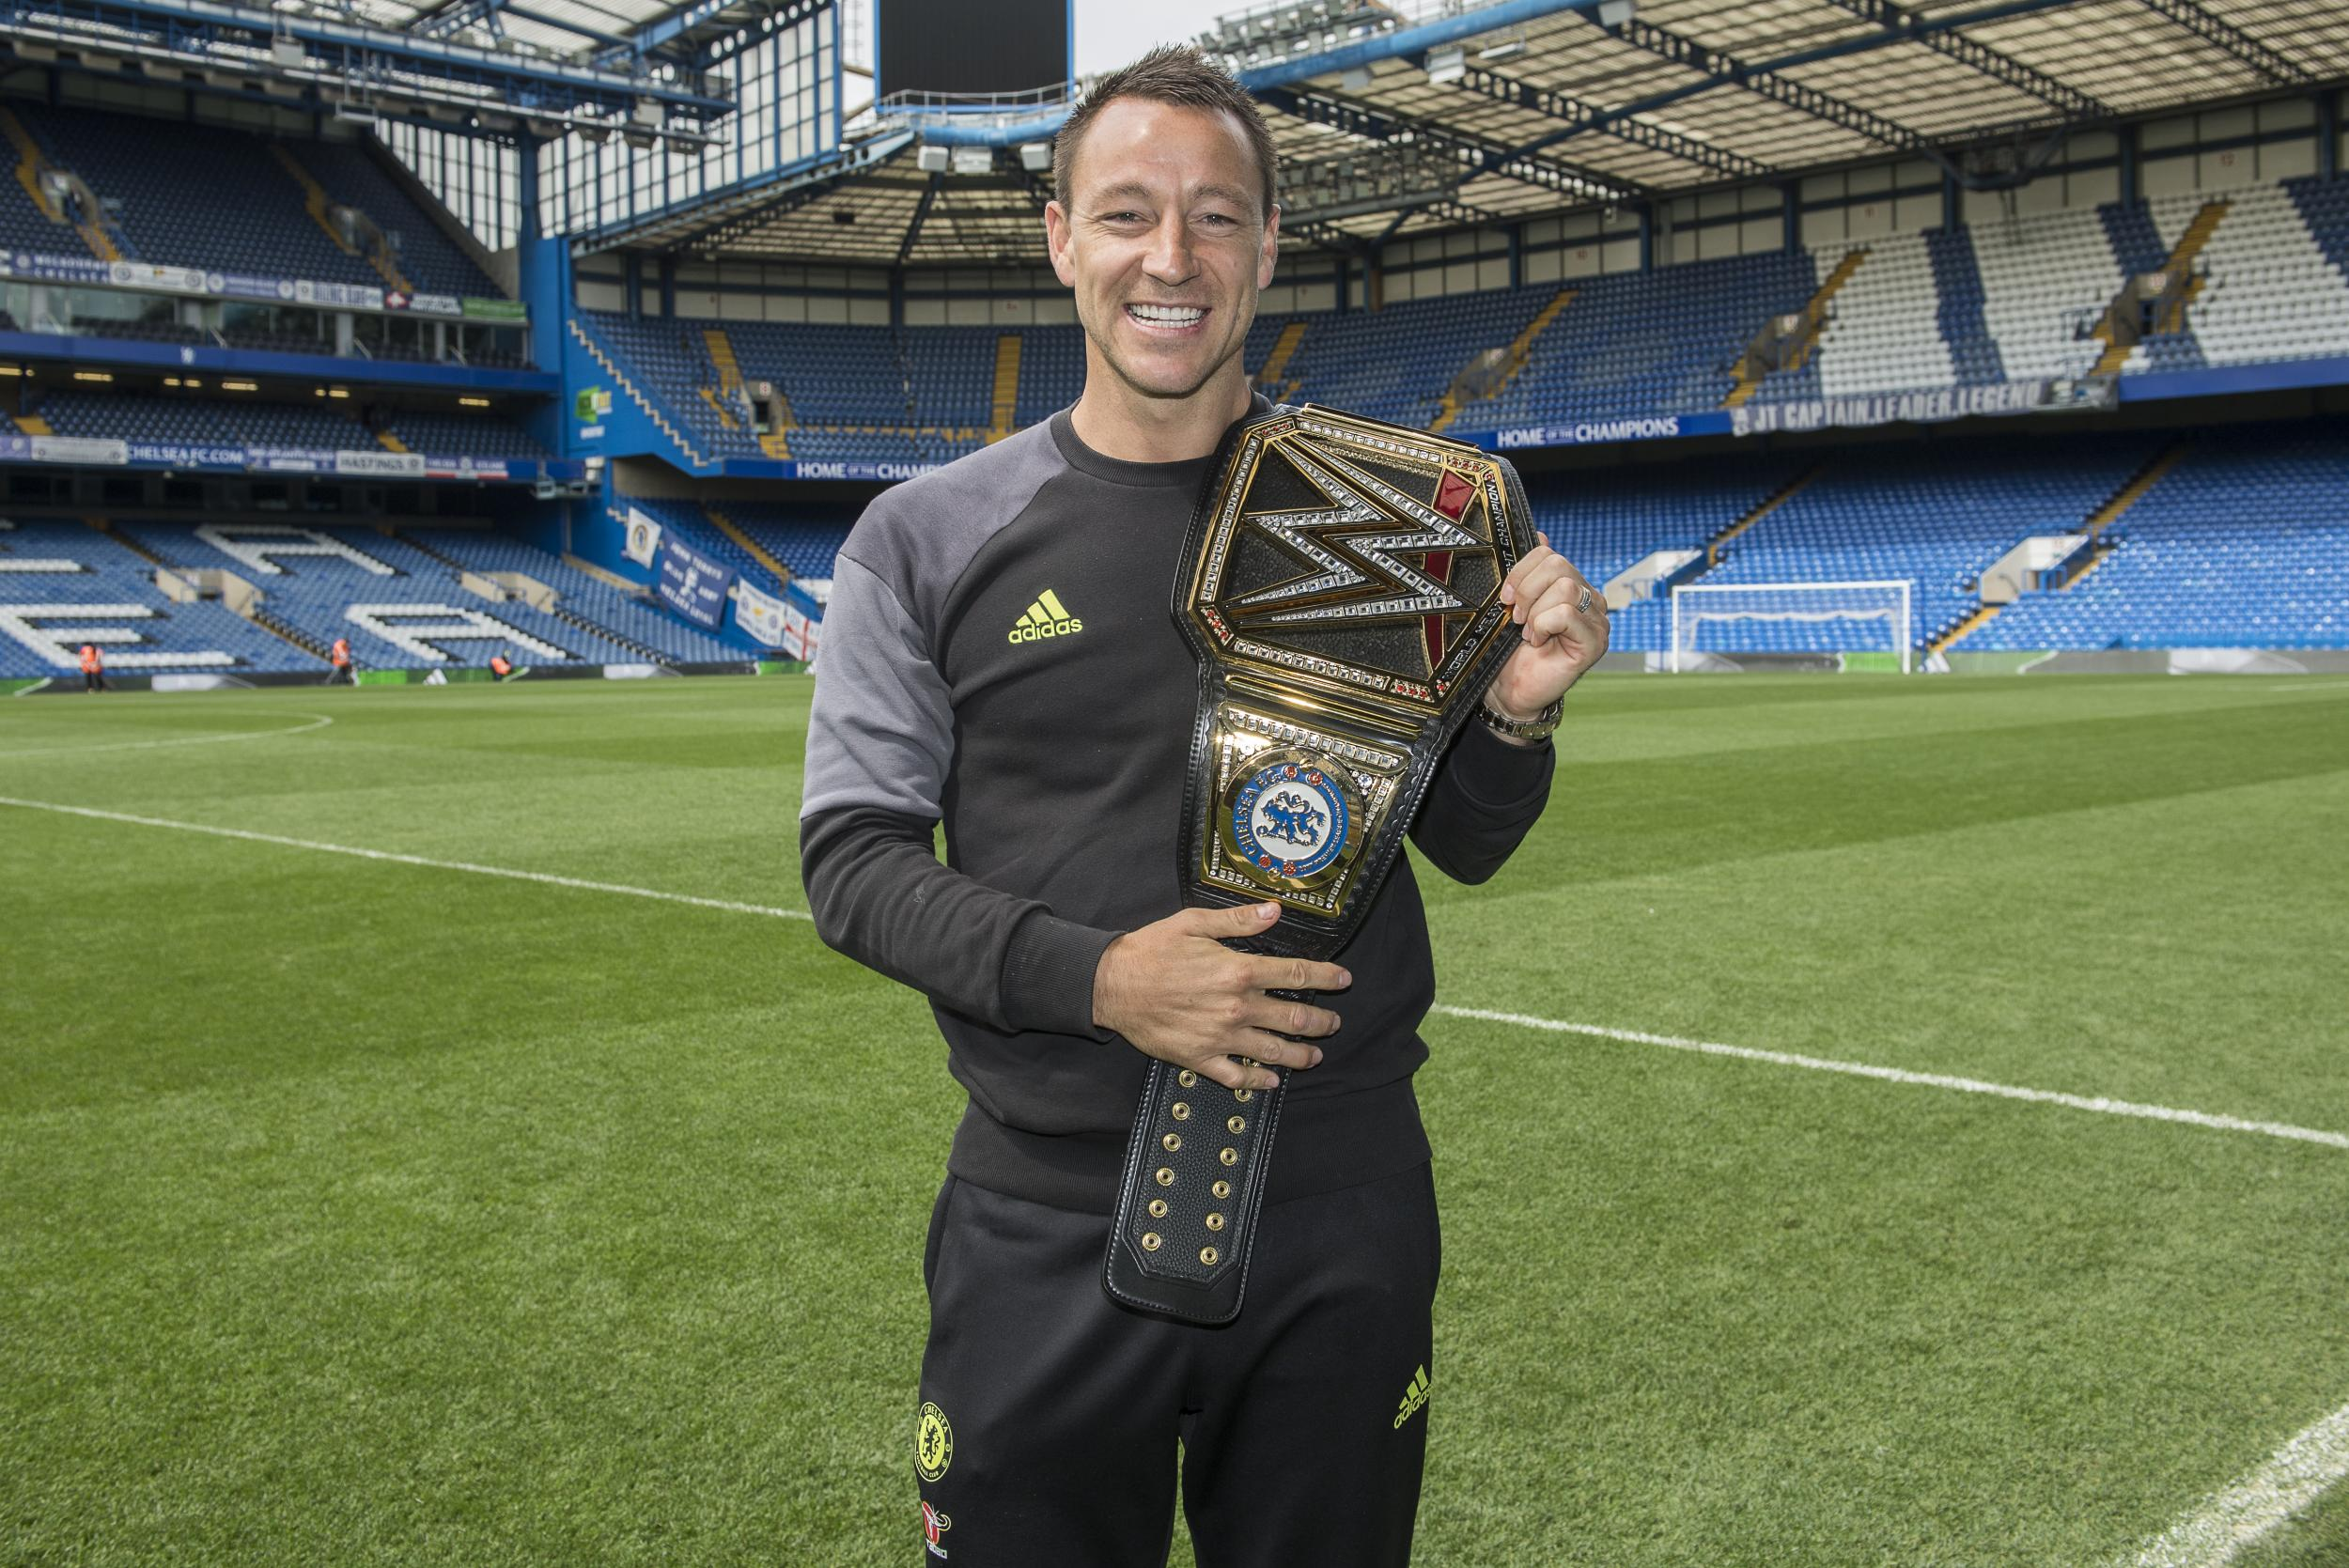 Wwe Present Chelsea Captain John Terry With An Honorary